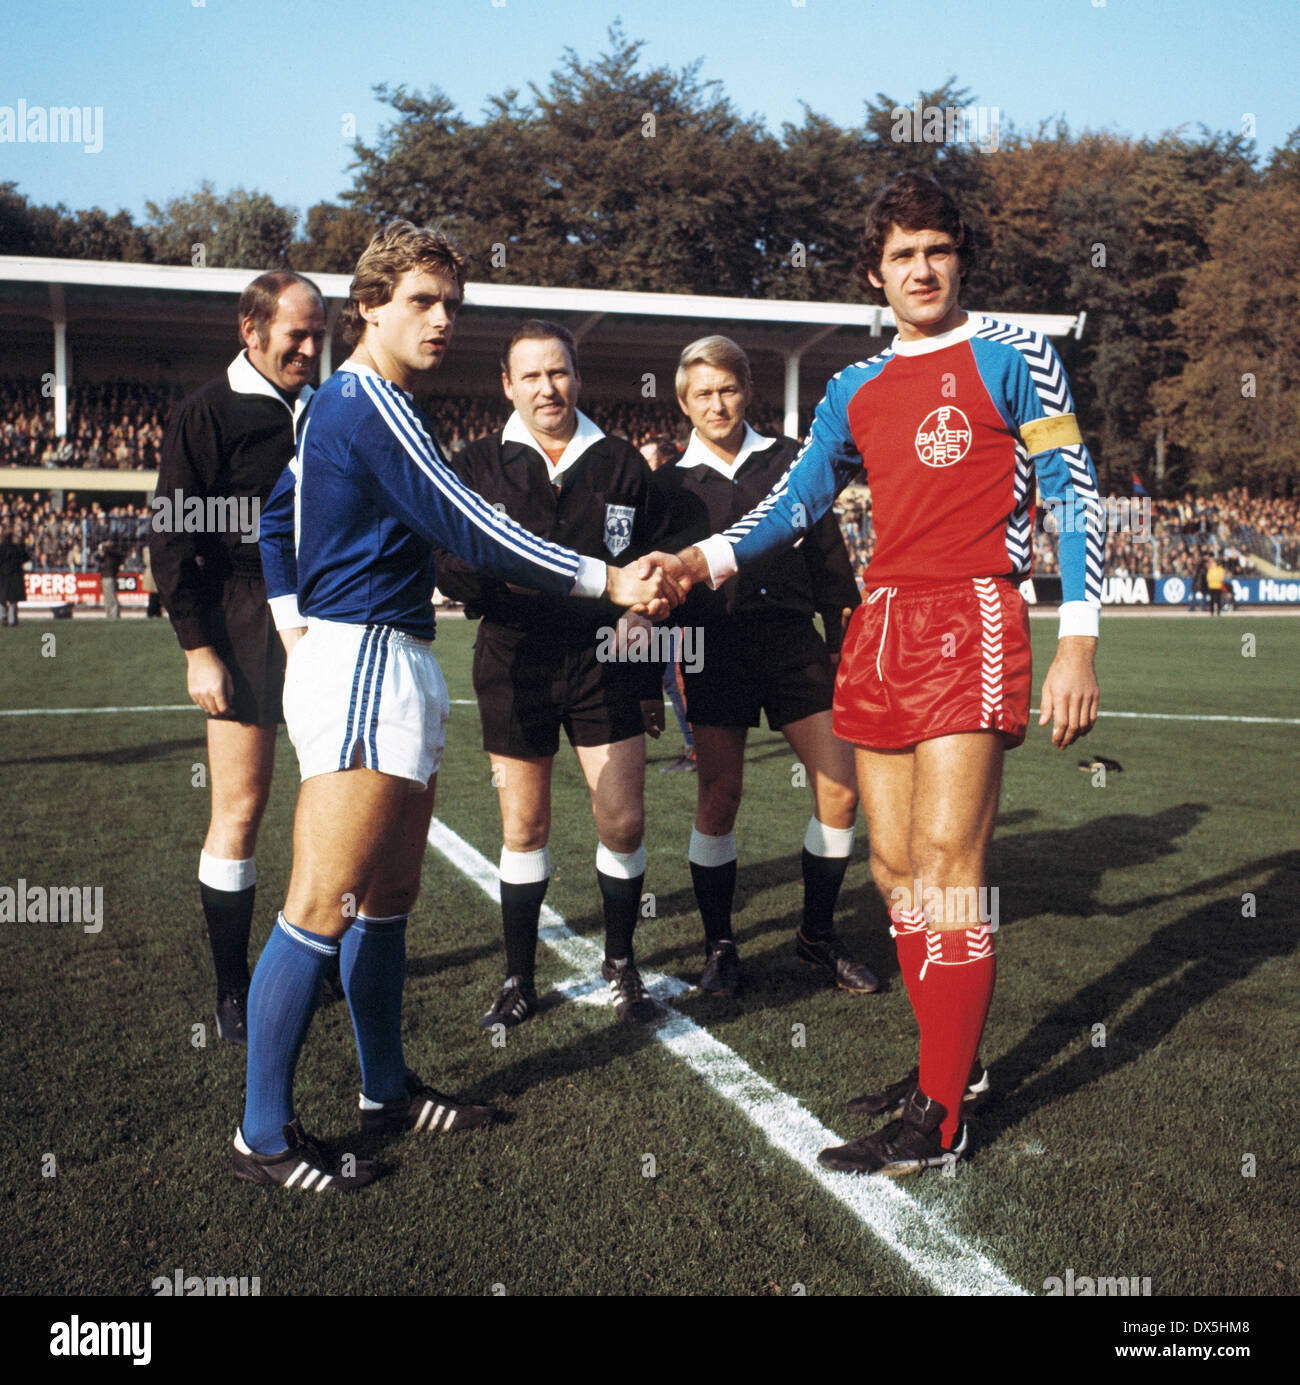 football, Bundesliga, 1975/1976, Grotenburg Stadium, FC Bayer 05 Uerdingen versus FC Schalke 04 3:2, welcome of the team leaders Helmut Kremers (S04) left and Paul Hahn (Uerdingen), behind referee Karl Riegg and assistants - Stock Image